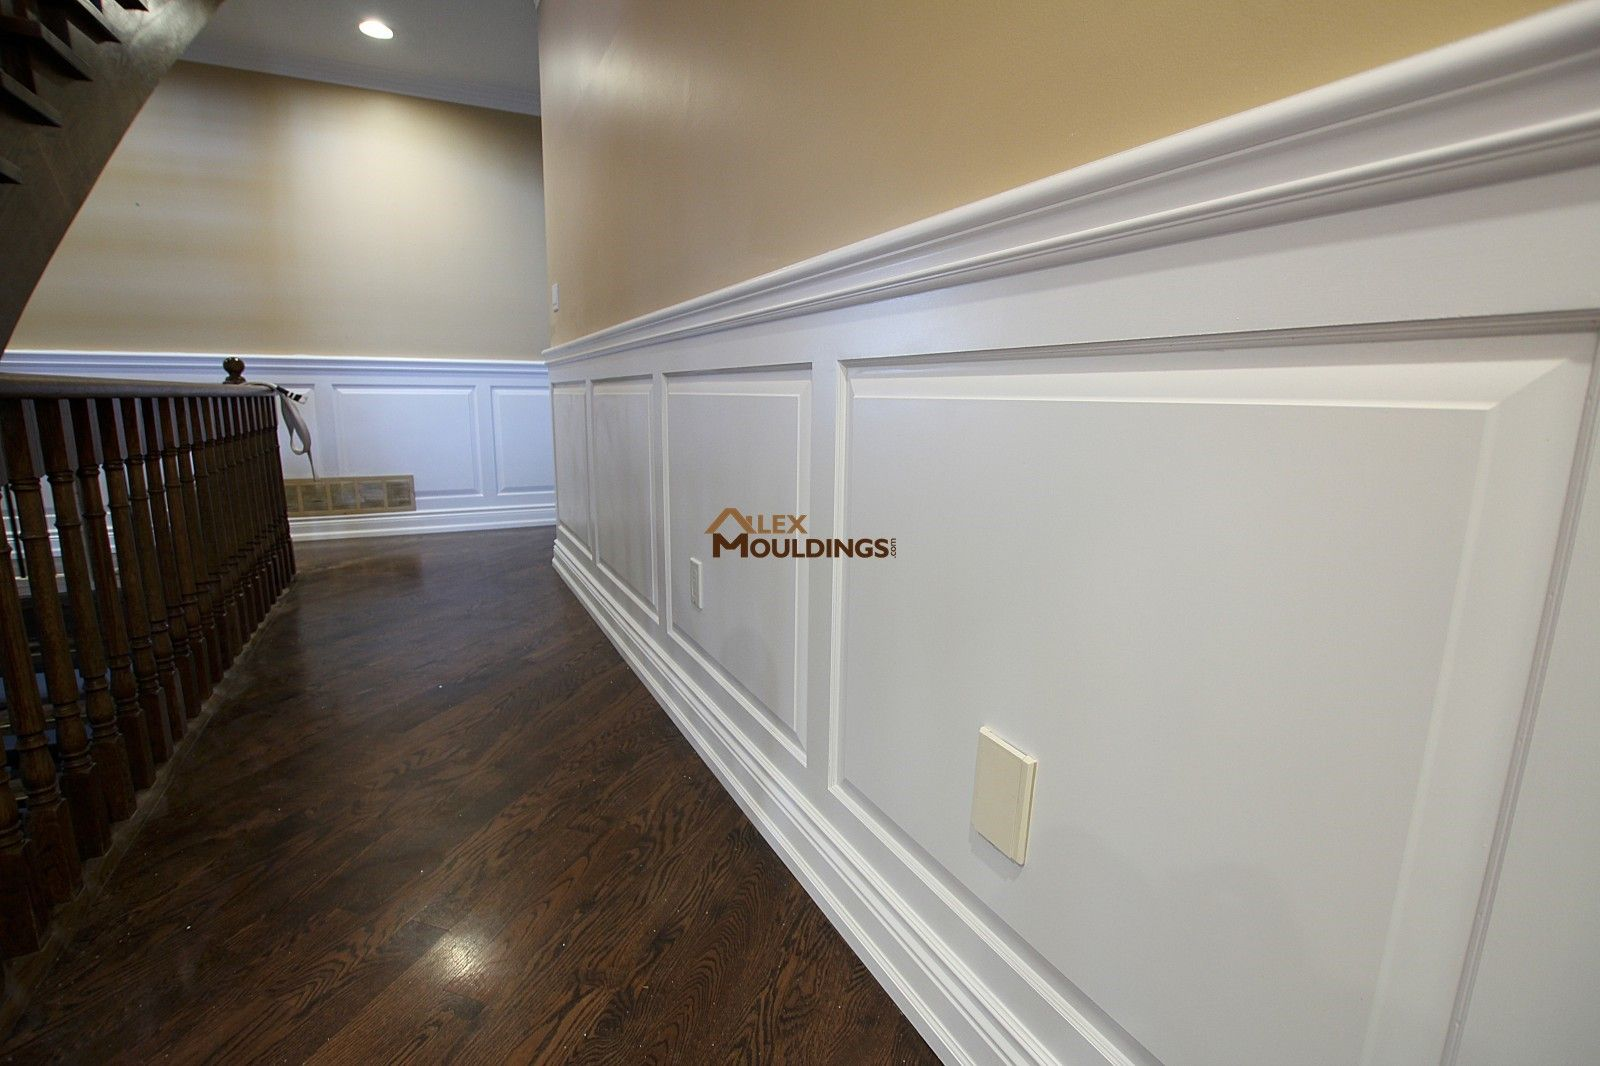 The White Wainscoting Panels Complement The Corridors Of This Upper Roof And Add The Necessary Wall Deco Faux Wainscoting Wainscoting Panels Wainscoting Styles